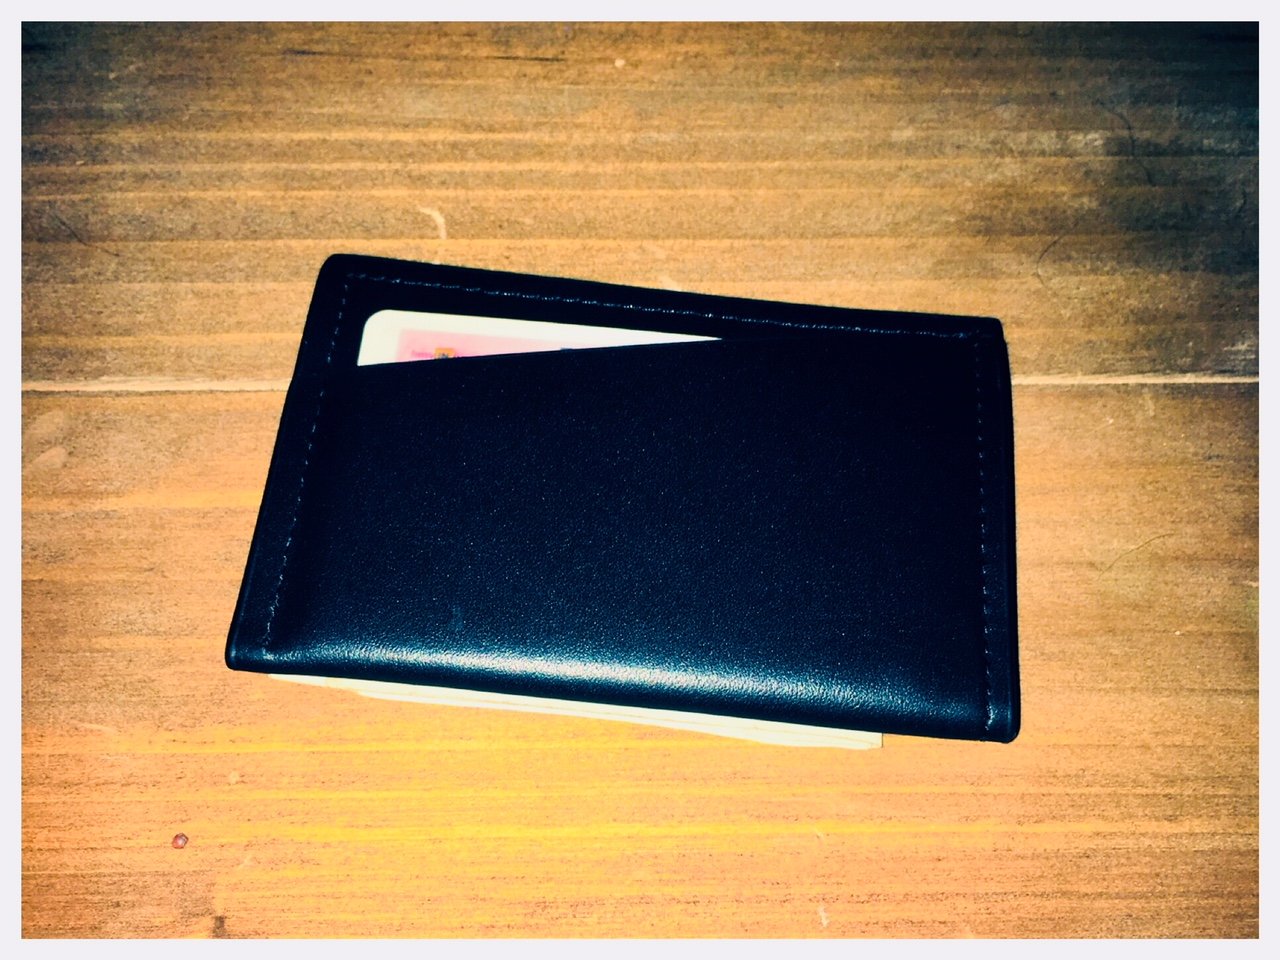 Kore Slim Wallet And Carbon Fiber Money Clip Review Sofrep Use the coupons before they're expired for the year 2020. slim wallet and carbon fiber money clip